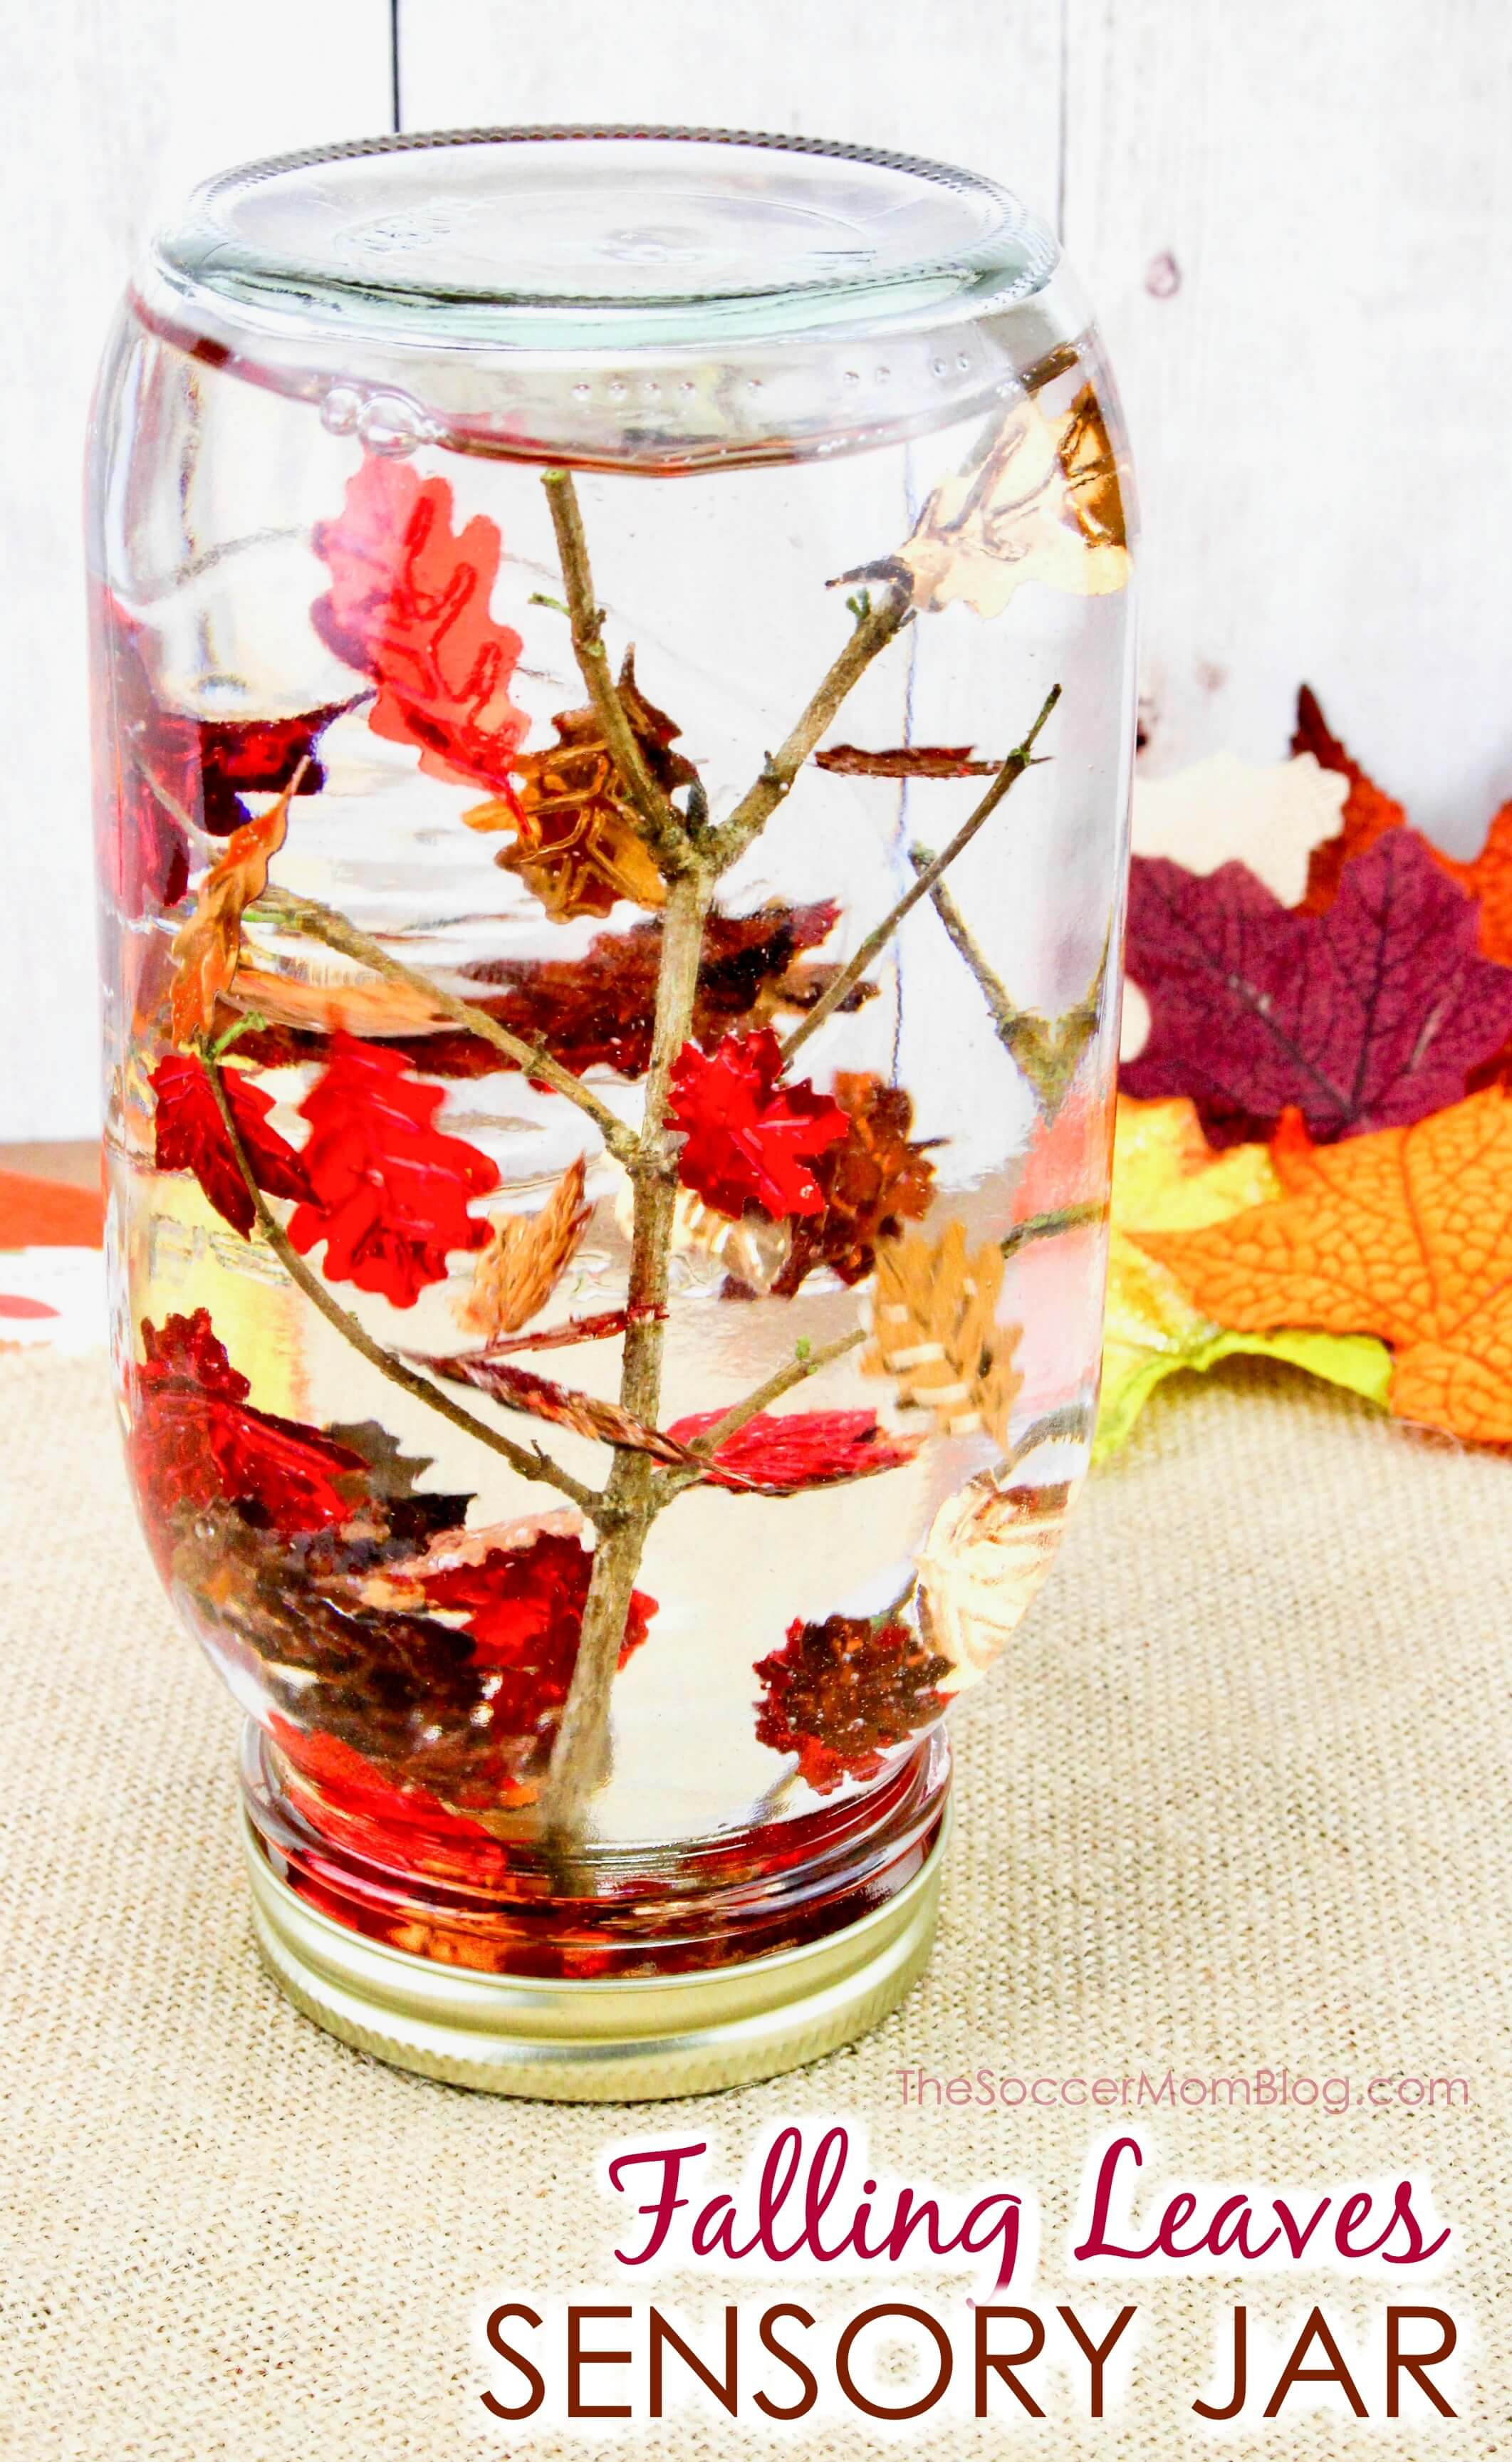 Mix with a spoon then add a bunch of the confetti to the jar. Swirl around with a spoon and if the confetti immediately sinks to the bottom then add a bit more glycerin. The glycerin is what makes the leaves fall slowly.